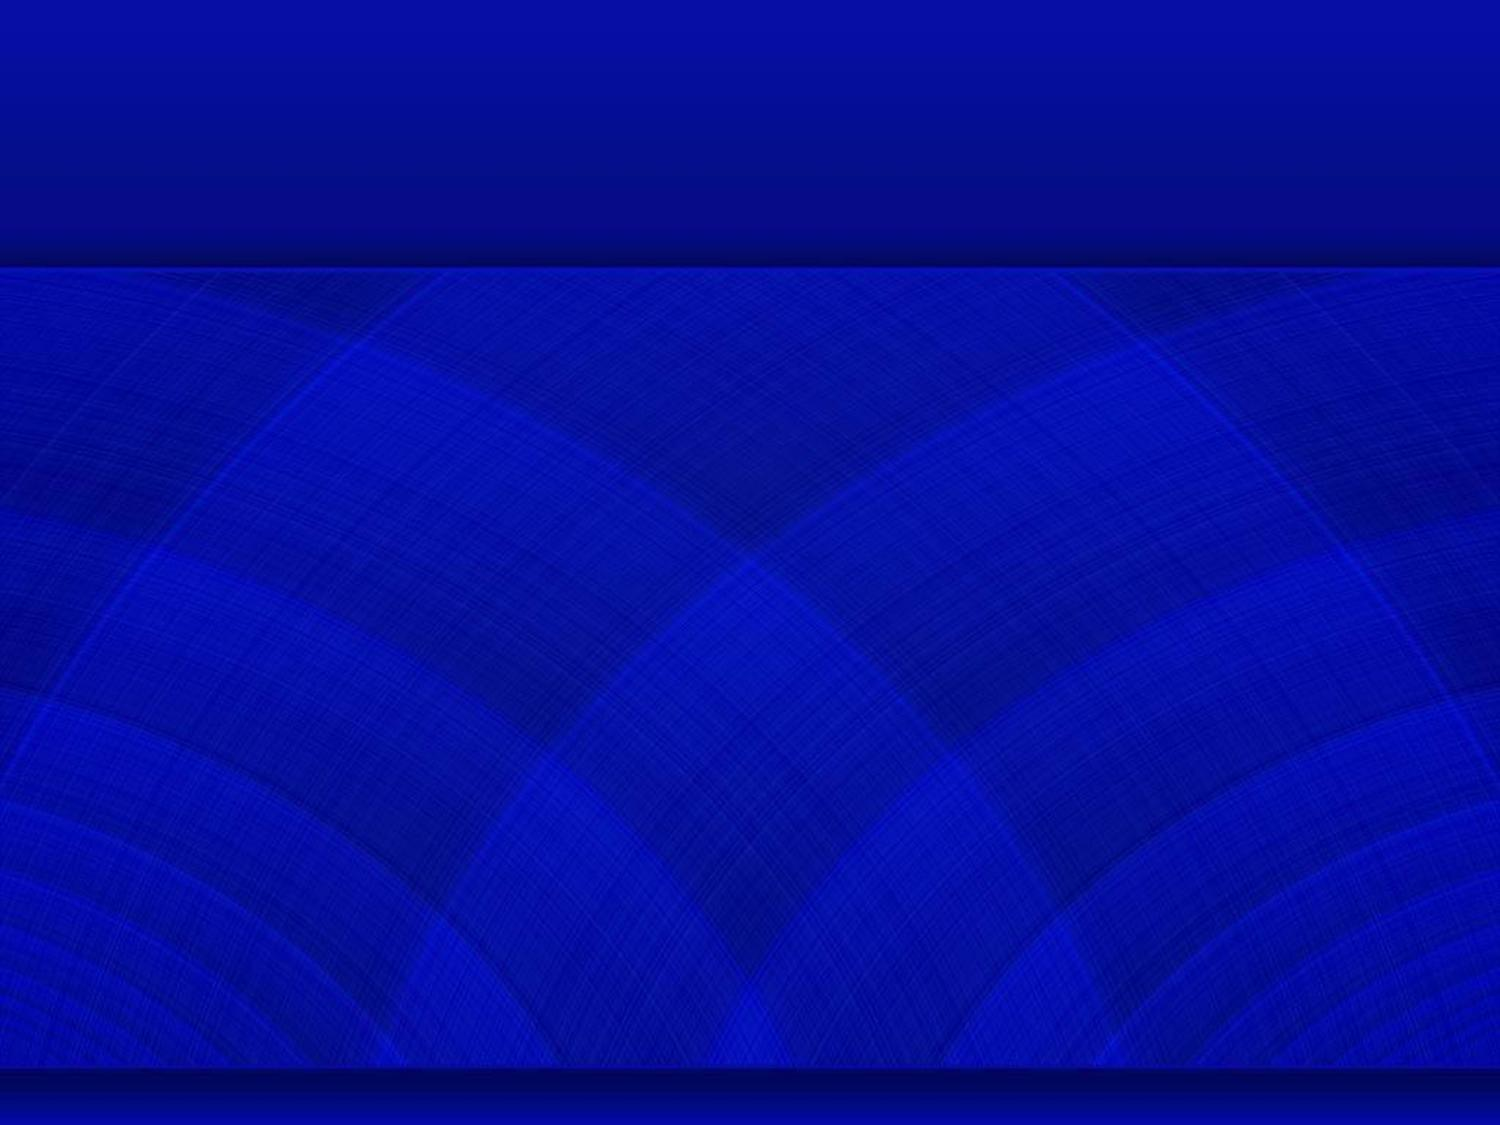 Royal Blue Background - PowerPoint Backgrounds for Free ...